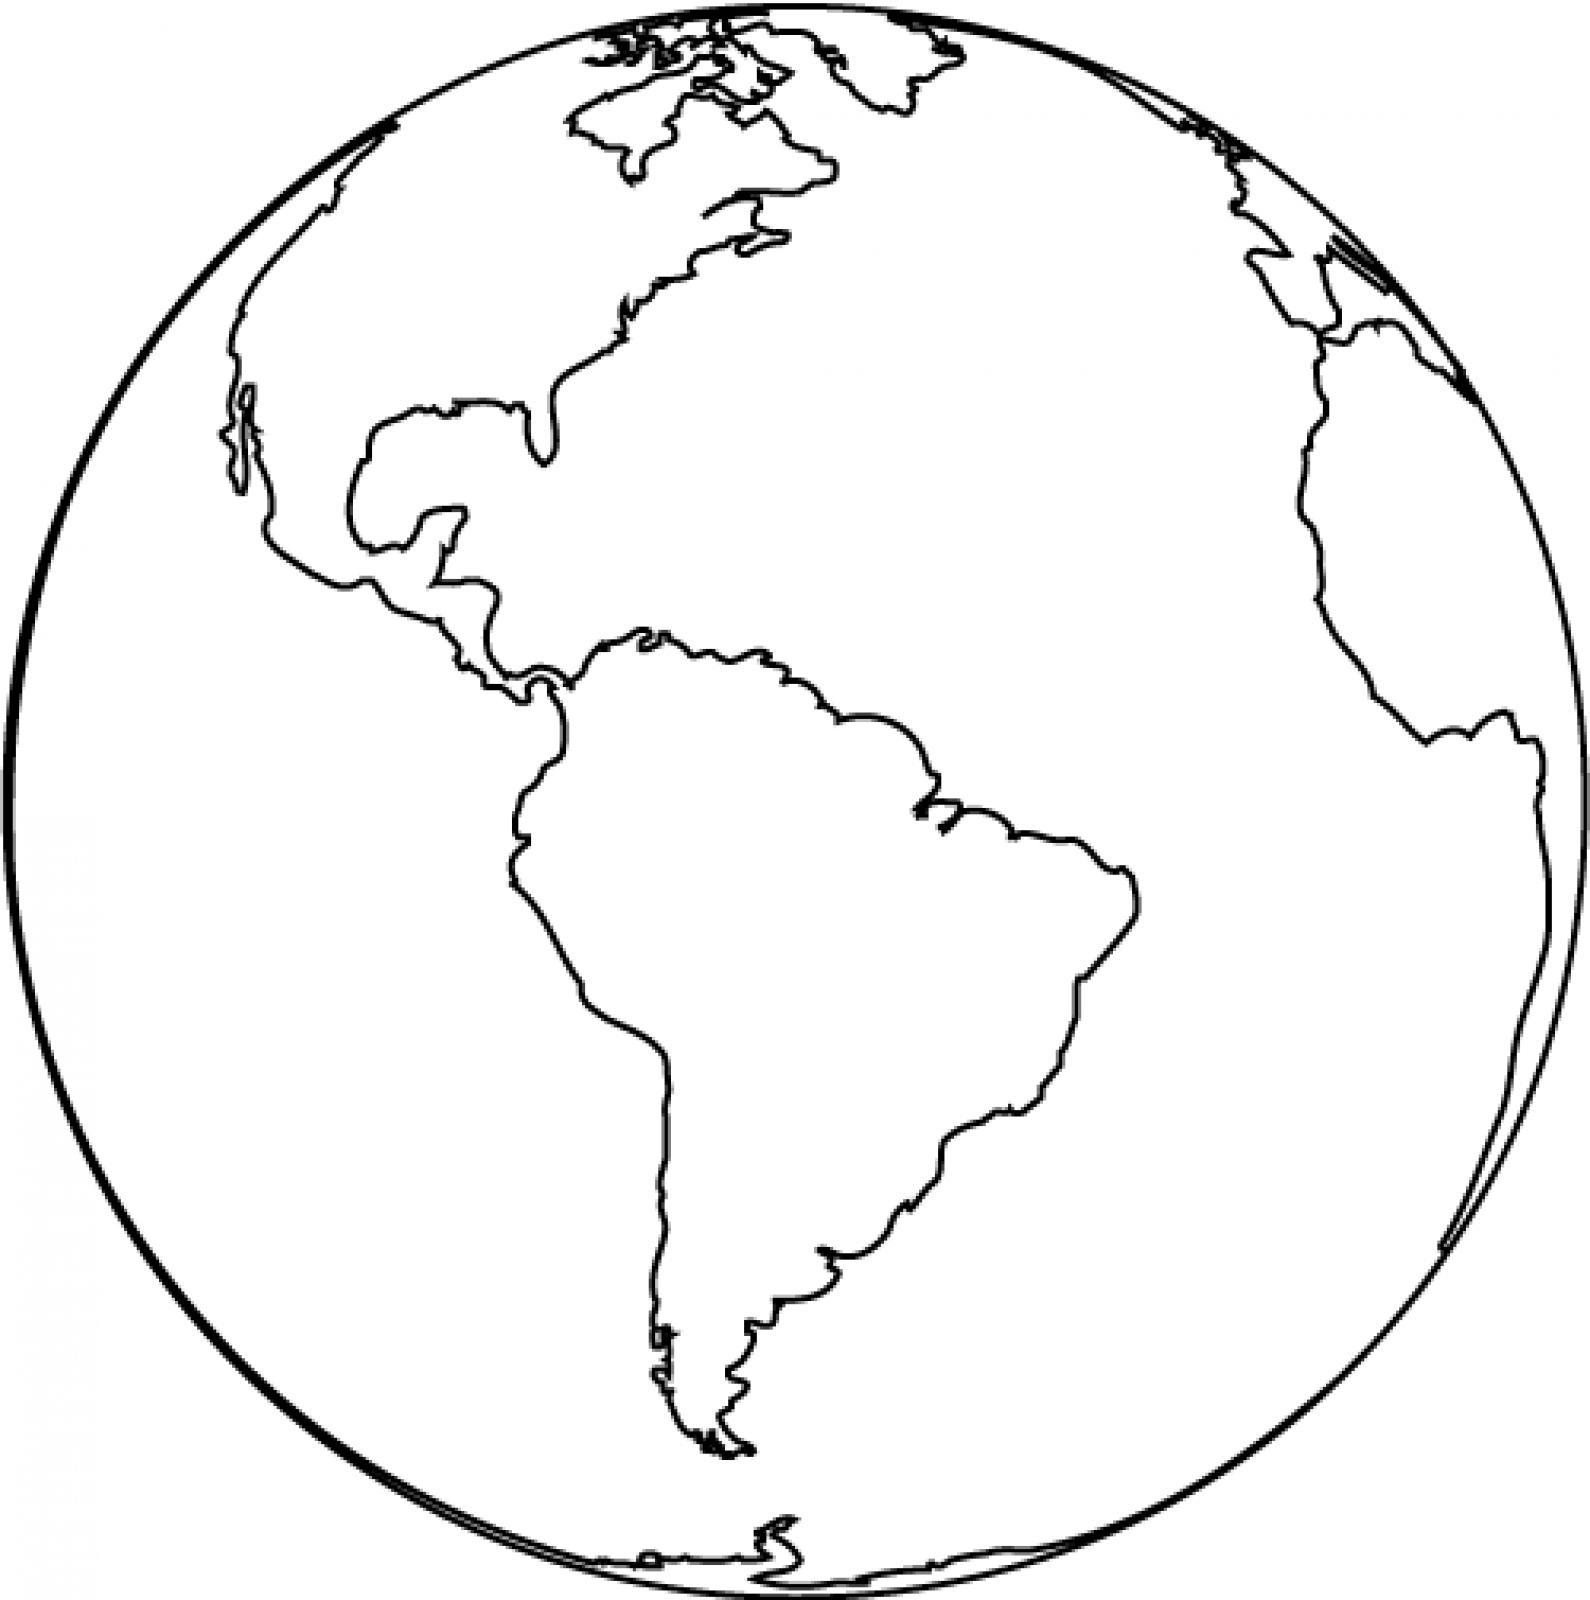 Earth clipart with lines to write on clip free Earth drawing free download on Ayoqq cliparts clip free